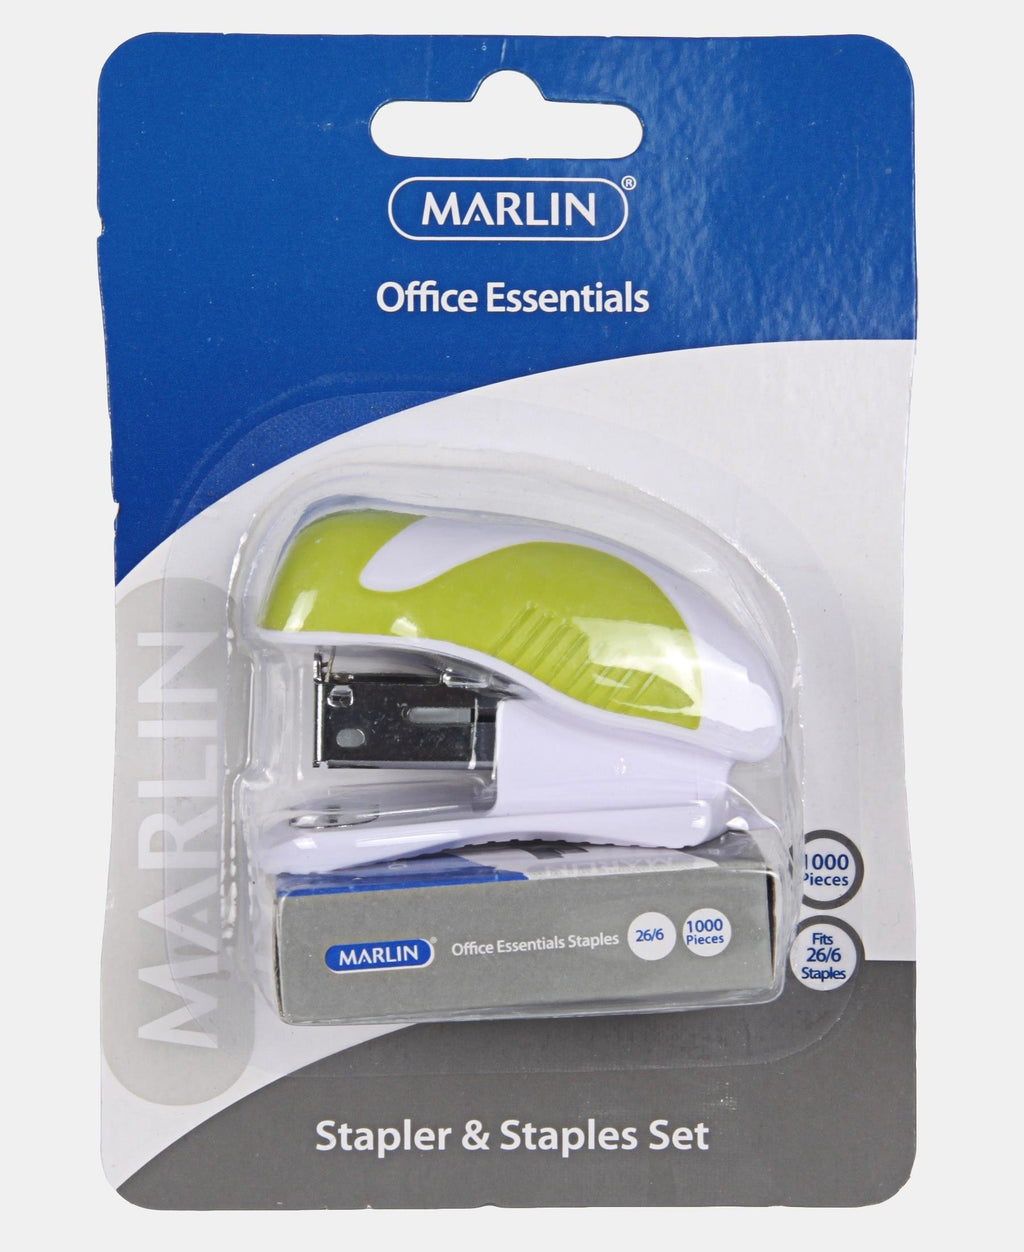 Marlin Mini Stapler And Staples Set - Light Green